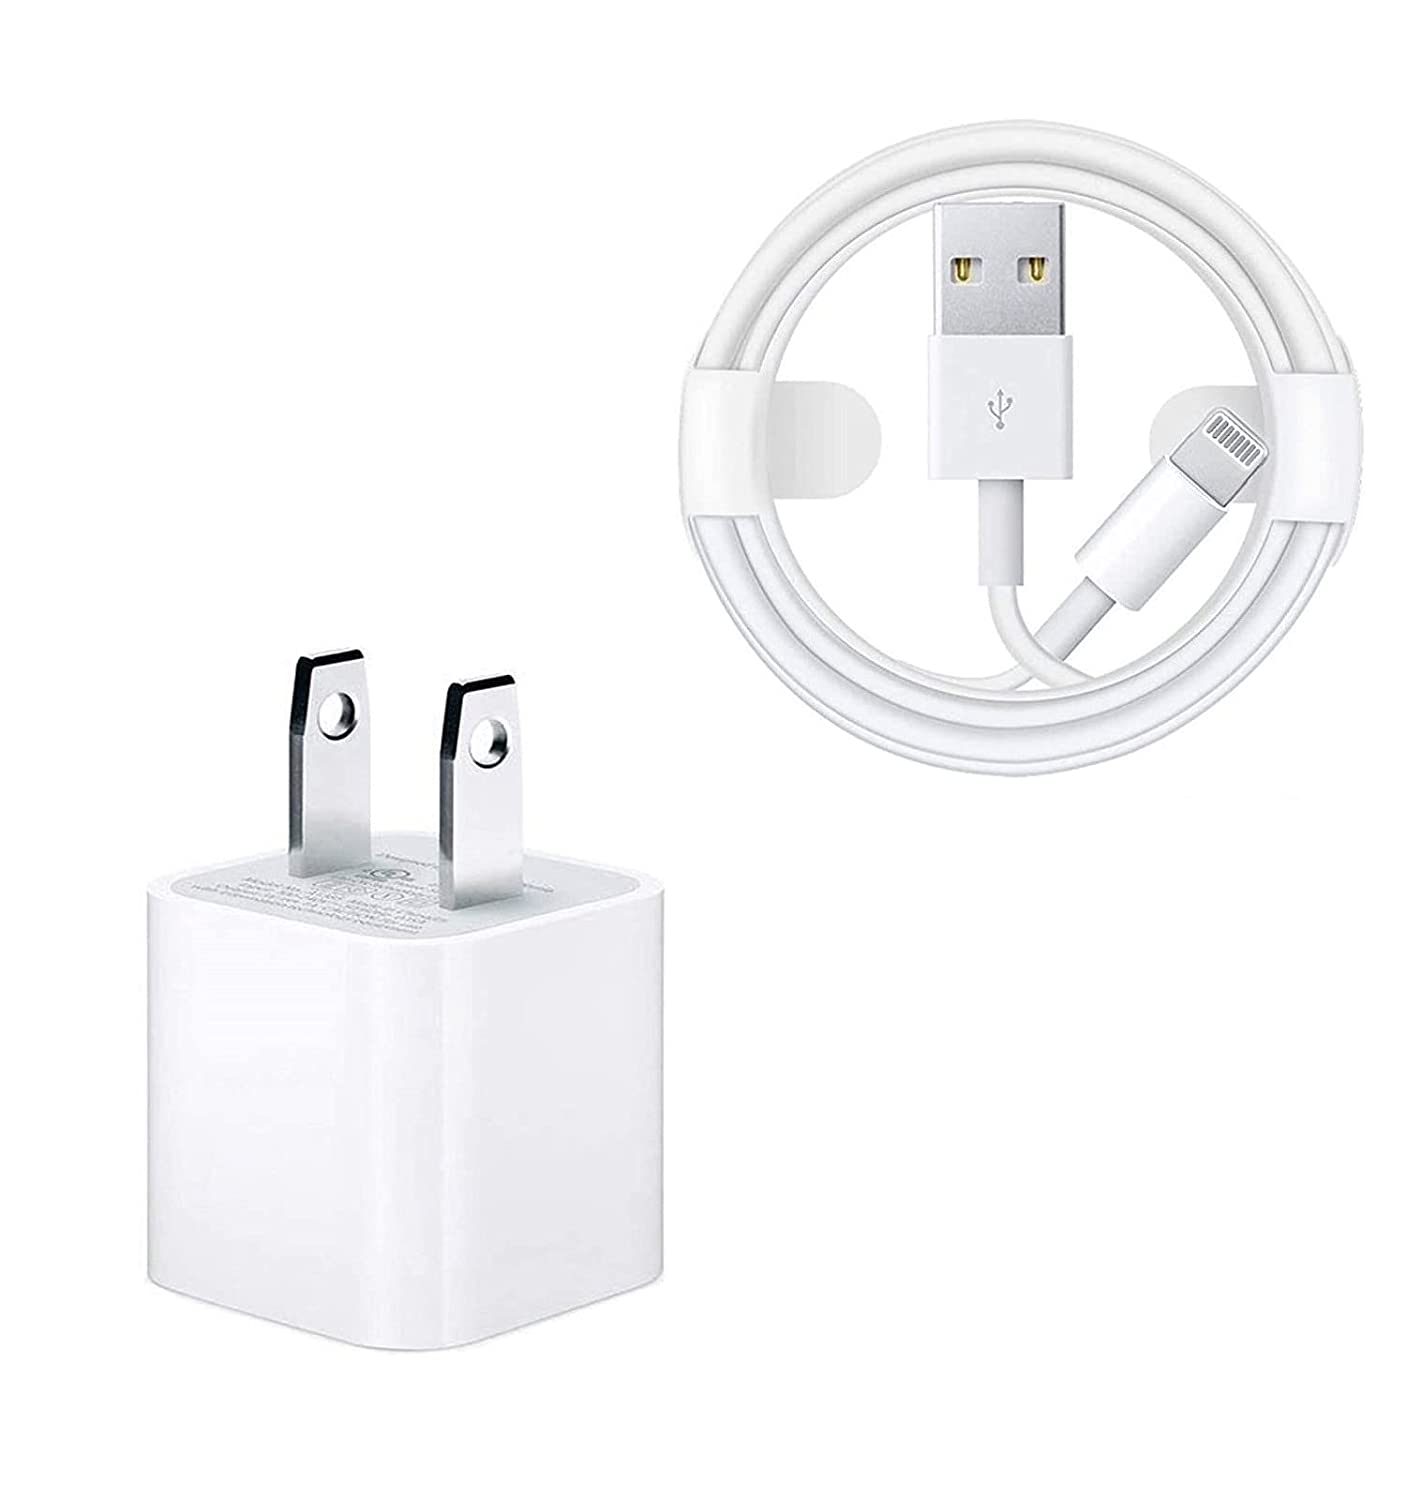 iPhone Charger, Apple MFi Certified 6FT Lightning to USB Fast Charging Data Sync Transfer Cable with USB Wall Charger Adapter Travel Plug Block (UL Listed) for iPhone 12/11/SE 2020/XS/XR/X/8 7 6, iPad